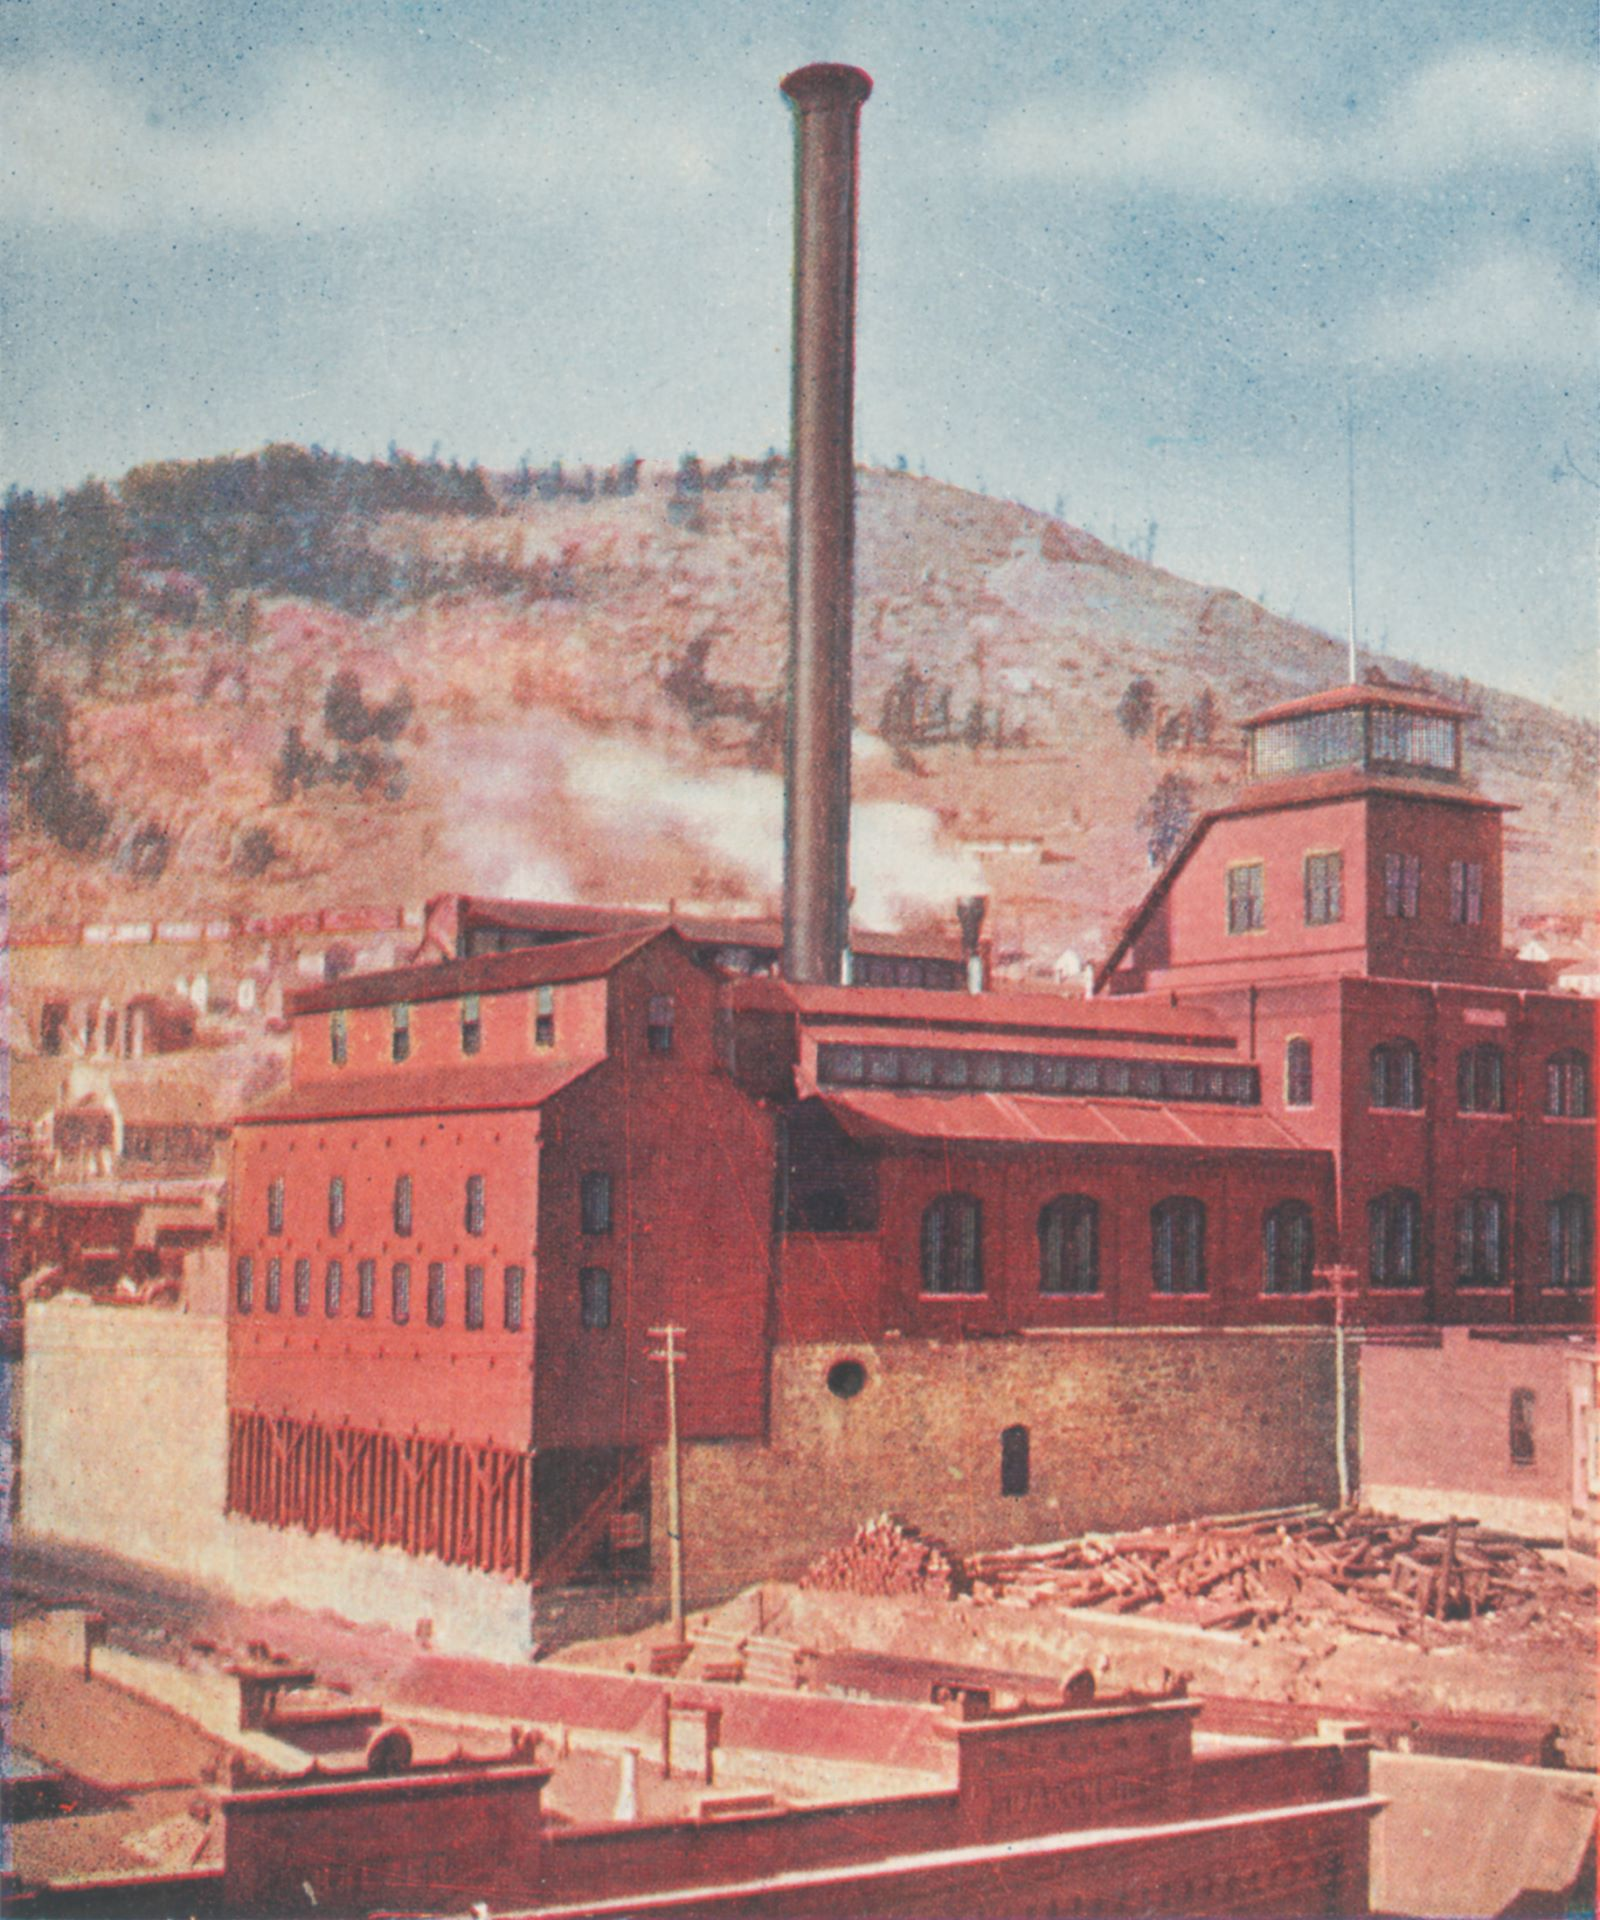 This view shows the Gold Coin Mine in Victor in all its glory, focusing more on the Ore-house. One get to see the foundation walls which still for the most part is still there in Victor, with its brick based shaft-house with the stained-glass windows and tower like part over the top of the head frame. The smokestack is very visible in this view, and in the background, is the Squaw Mountain seen, with the mainline of the M.T. seen just behind the top of the orehouse.